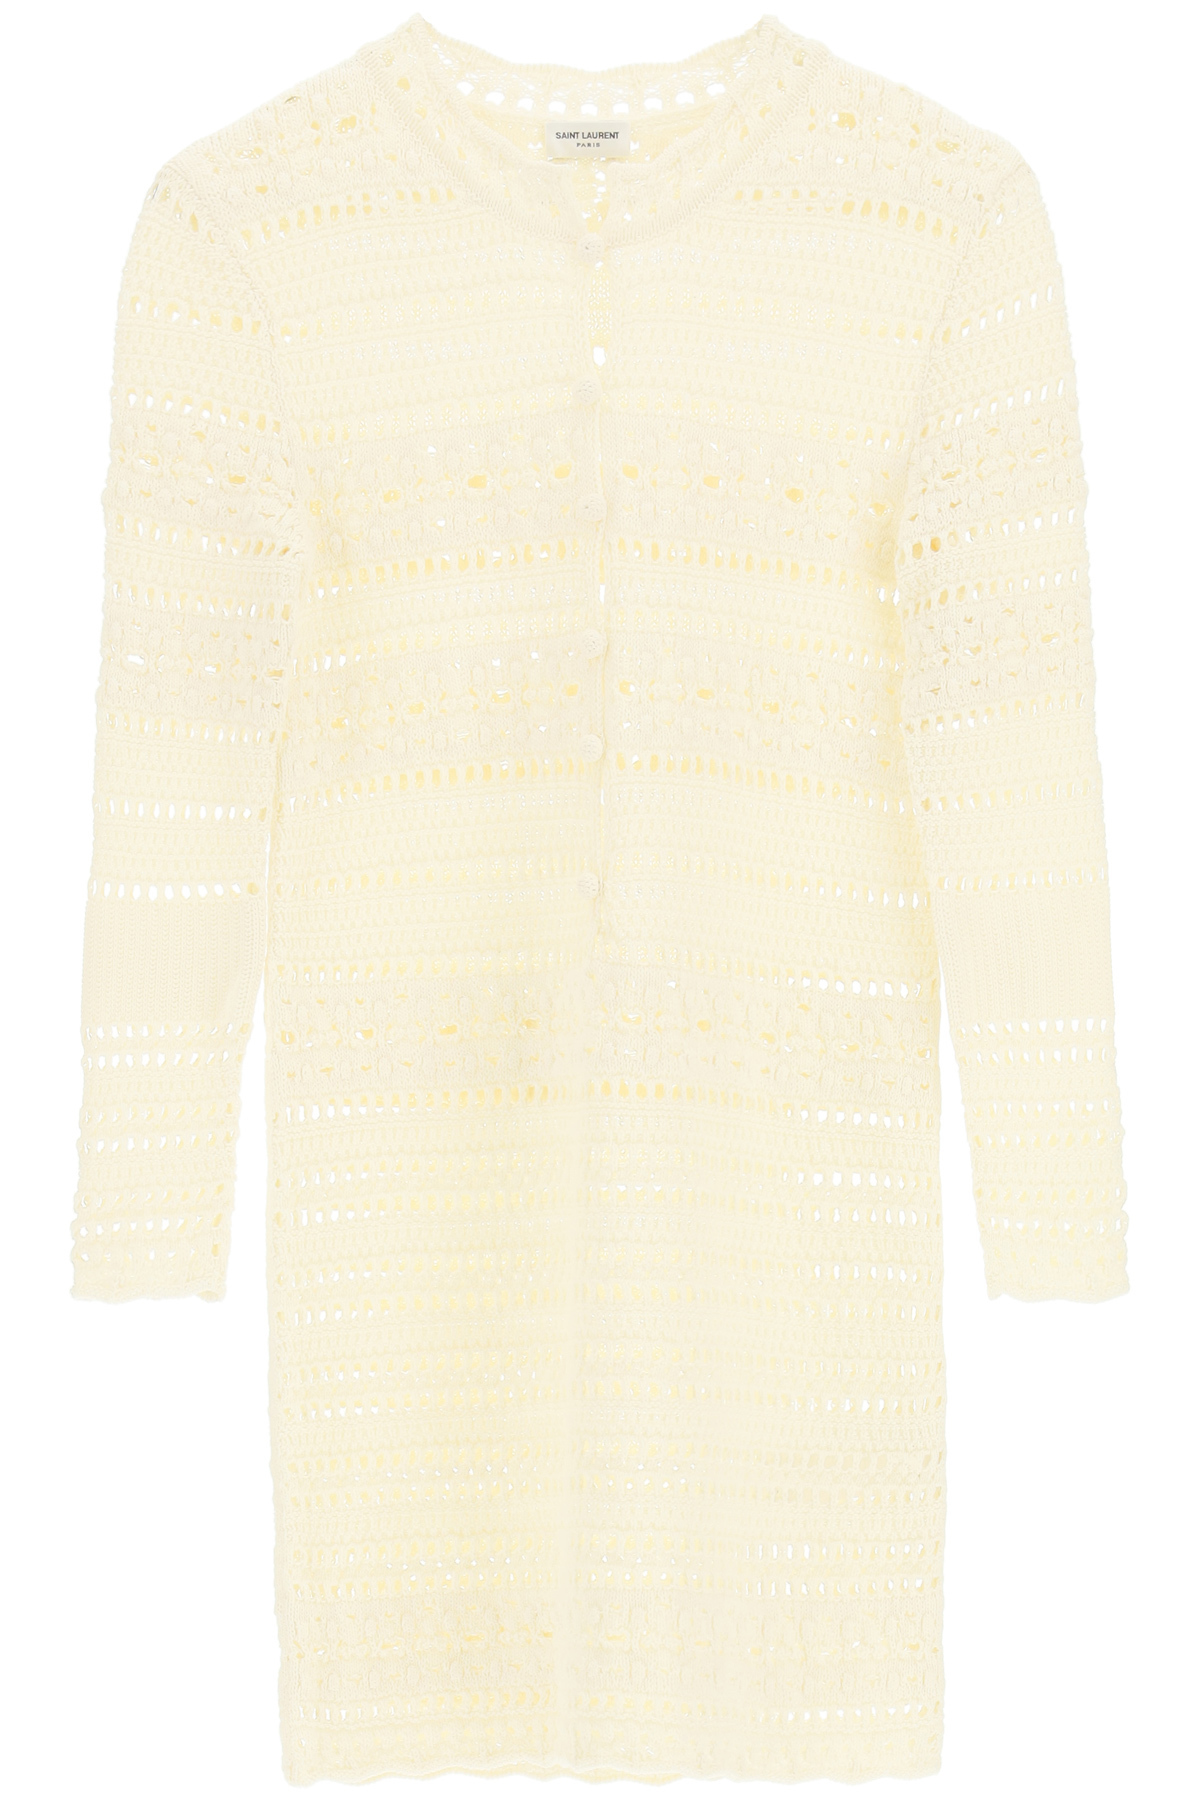 SAINT LAURENT CROCHET DRESS S Beige, White Cotton